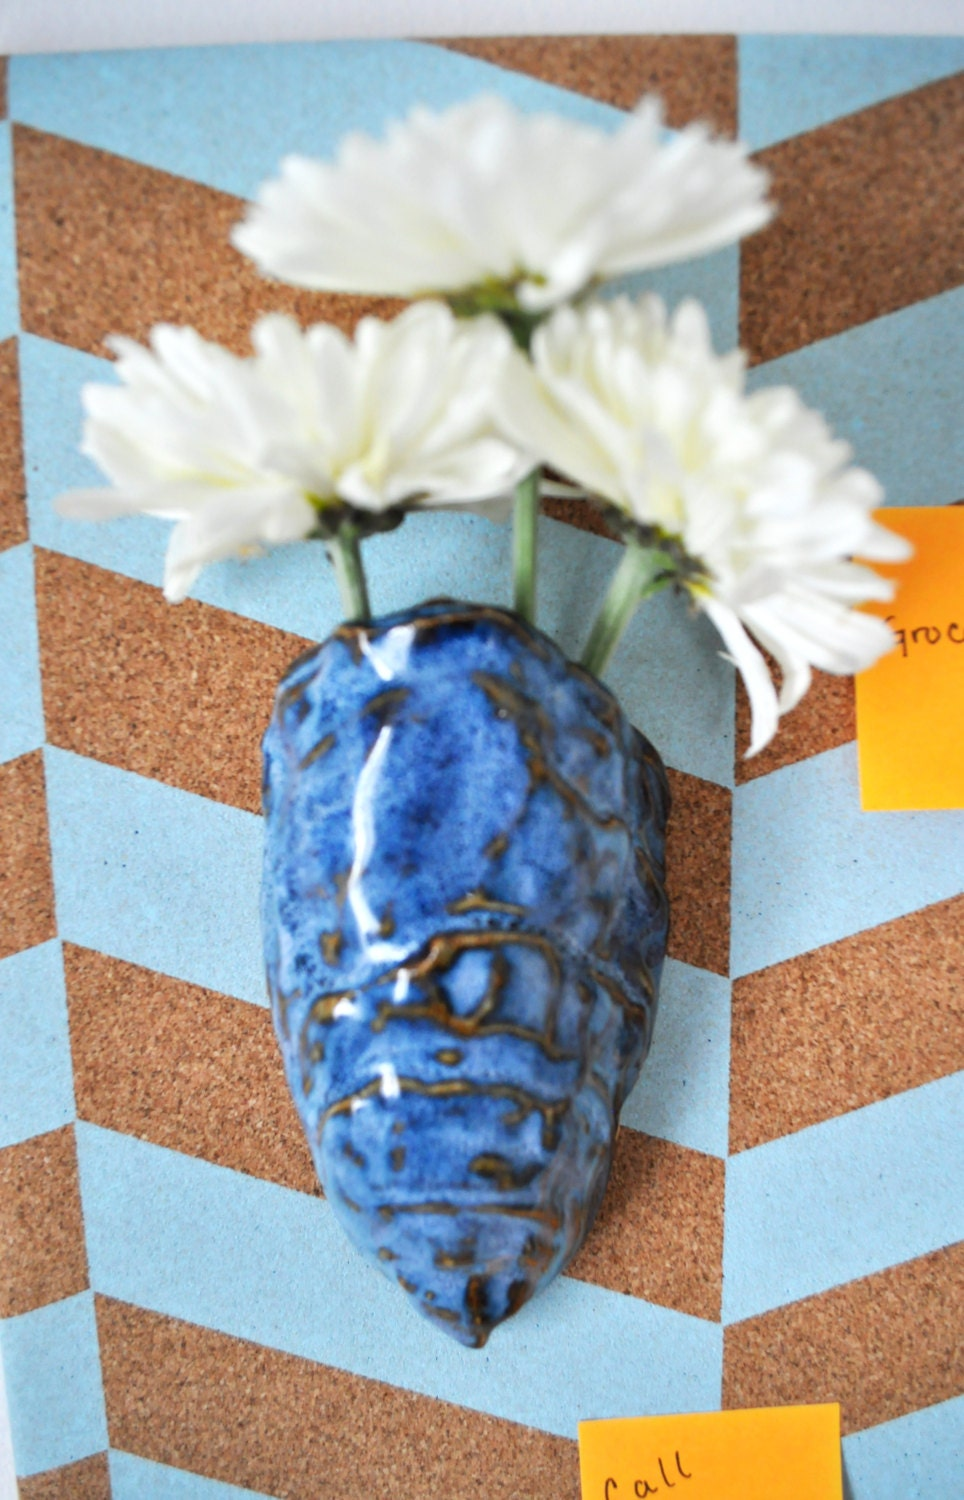 Ceramic Oyster Shell Vase Handmade With Licorice And Blue Glaze